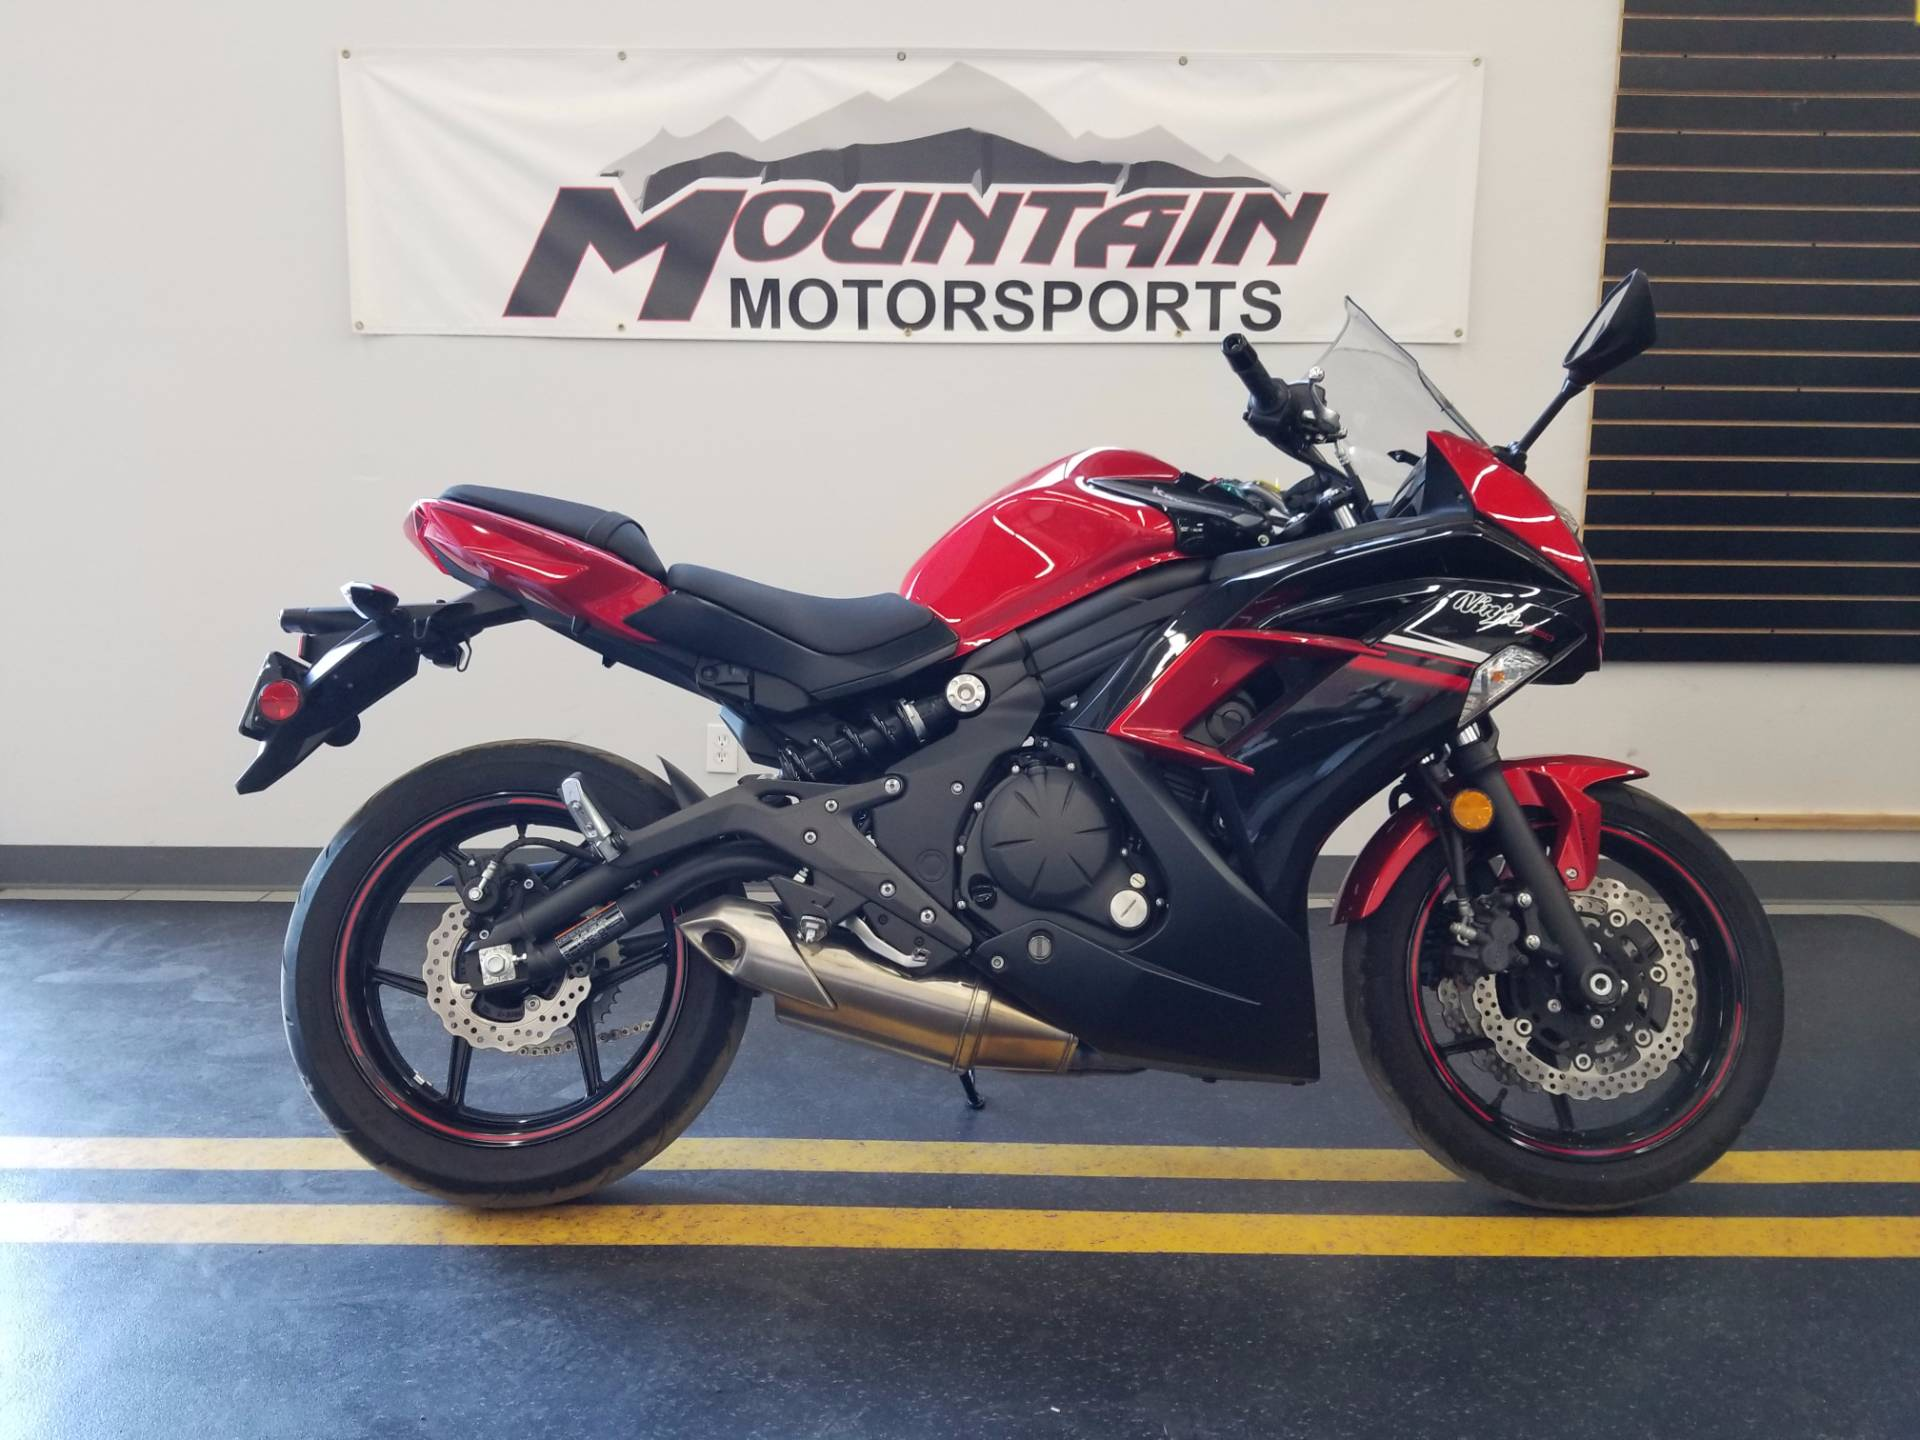 2016 Kawasaki Ninja 650 for sale 88